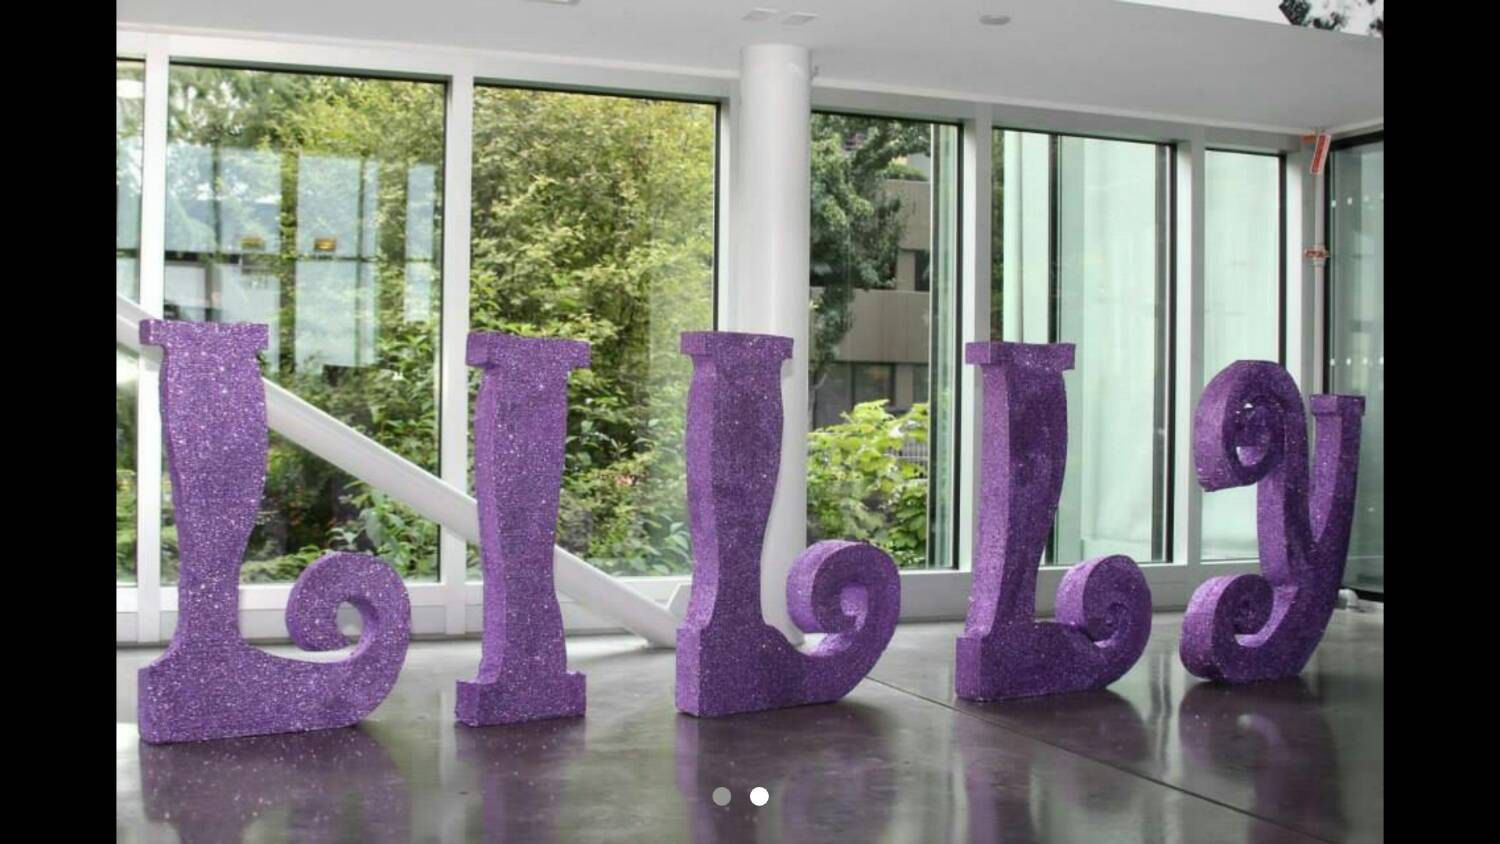 Free Standing Letters Extra Large Styrofoam Glitter Personalized Name White Wedding Decor 230 00 Usd By